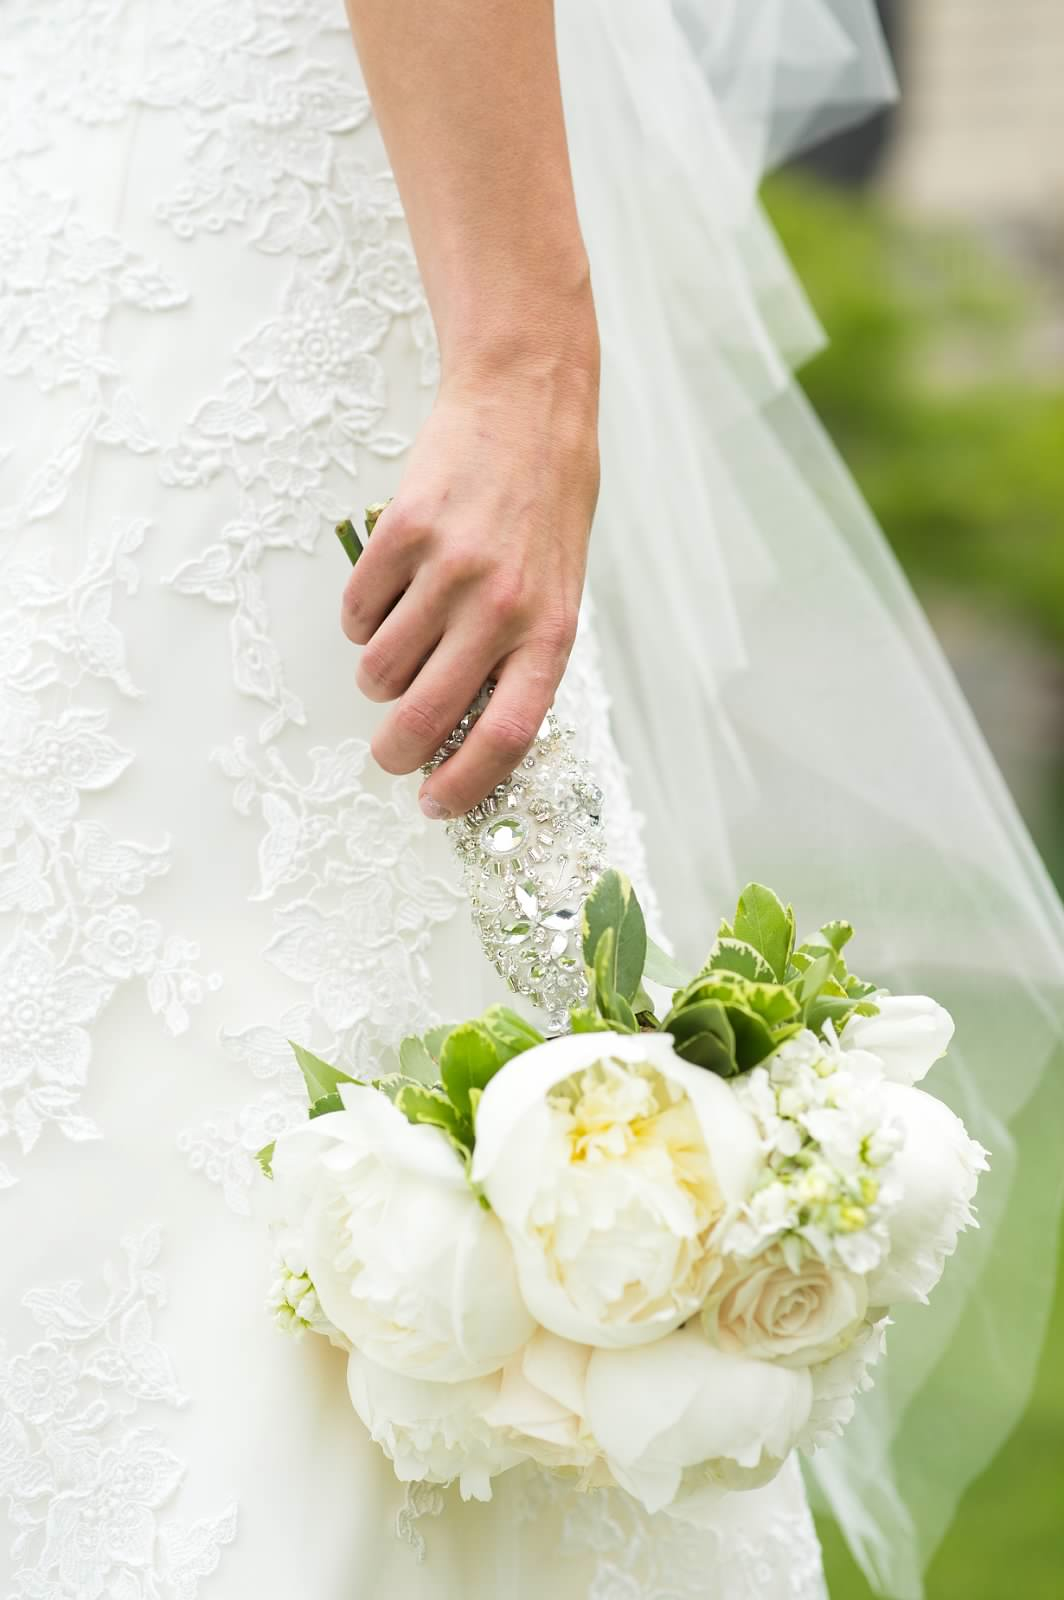 White bridal bouqet with peonies and Vendela roses with Swarovski crystal lace wrap.jpg